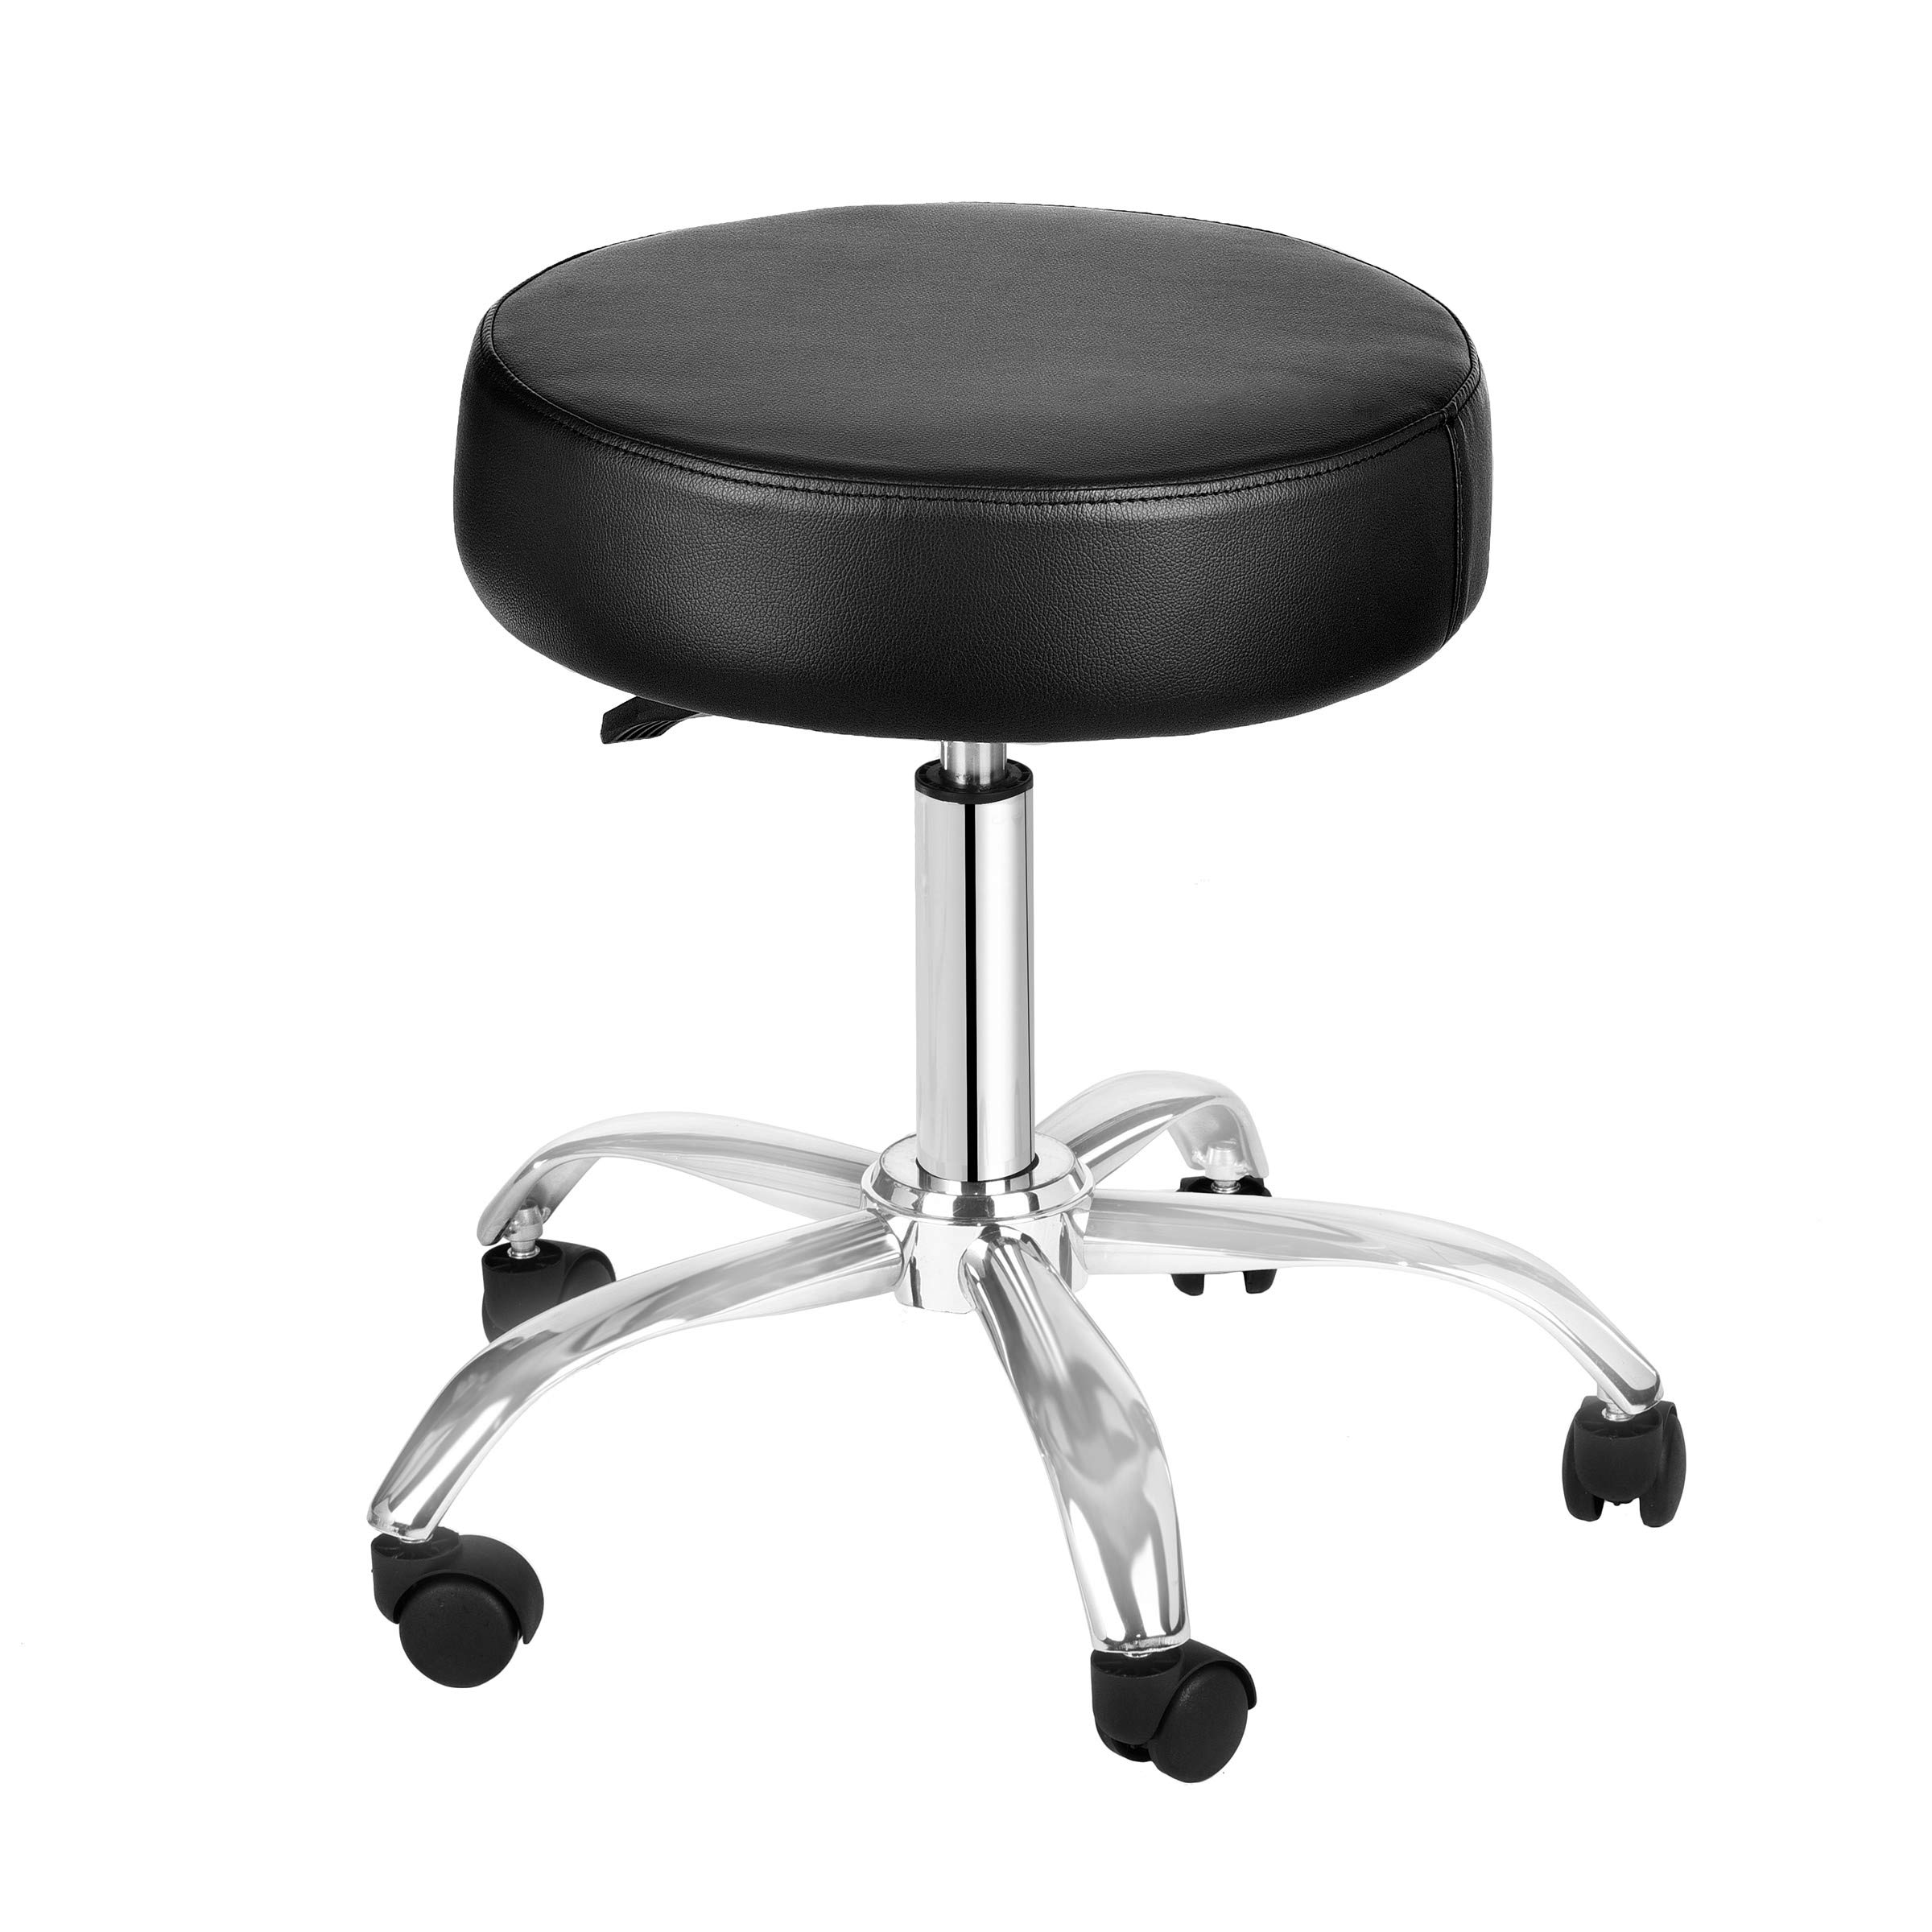 AdirMed Lux Height-Adjustment Stool - Pneumatic Rolling Swivel Stool - Versatile Mobility & Elevation for Spa Salon Home & Office Use (Black)